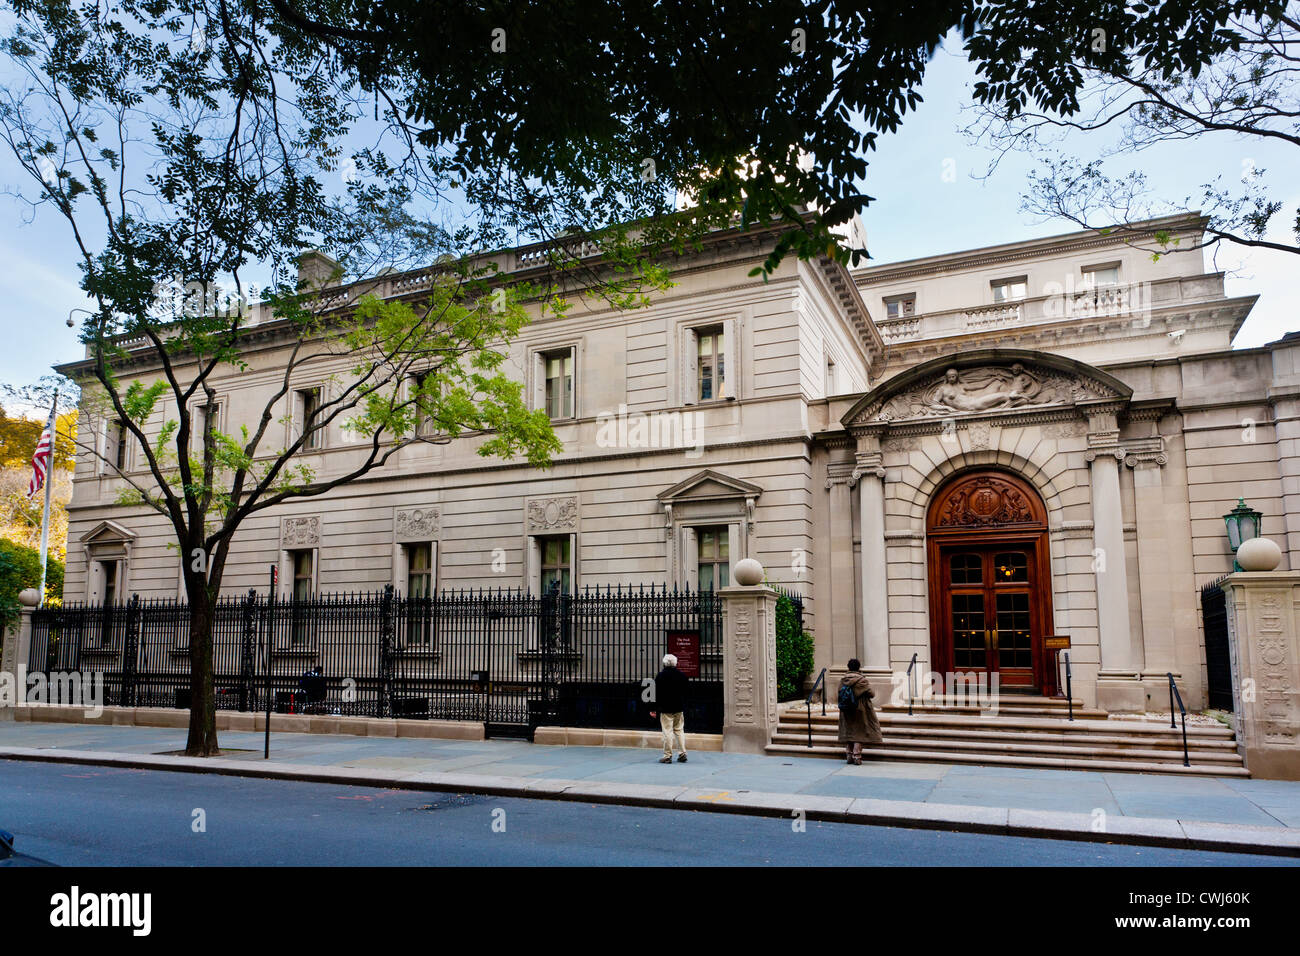 Frick Collection has 3 Vermeers, 5th Avenue, Museum Mile, New York City, USA - Stock Image